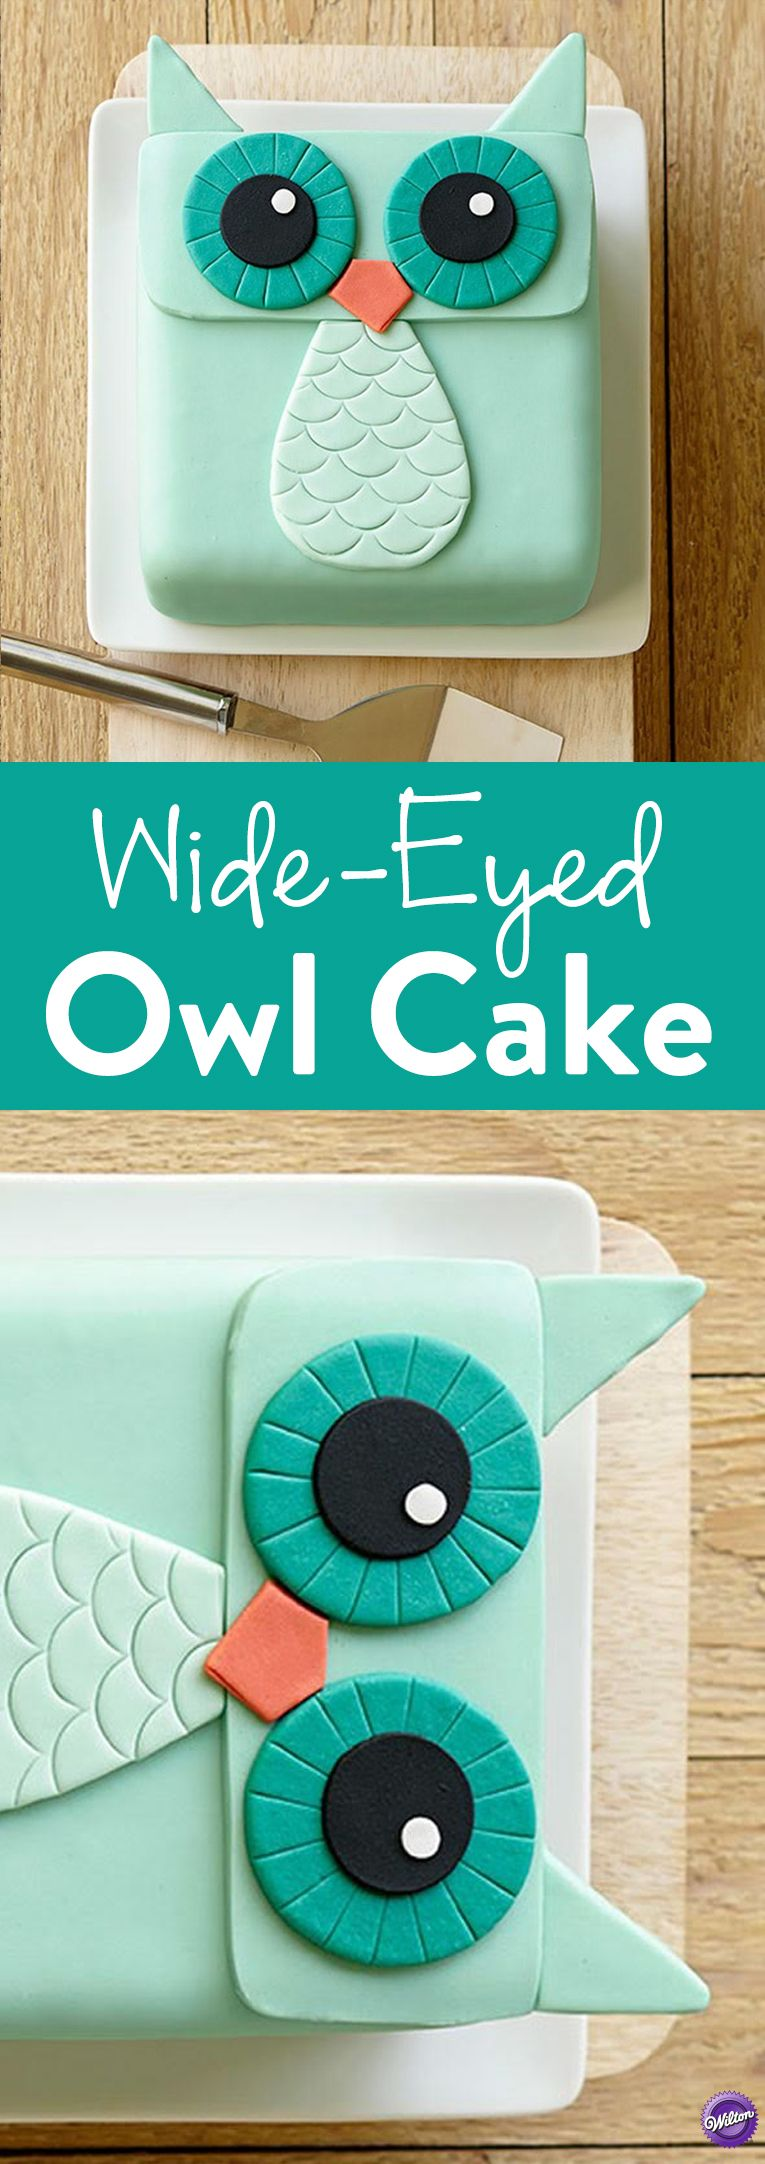 How To Make A WideEyed Owl Cake Owls Are Hot And This Cake Is - Easy fondant birthday cakes